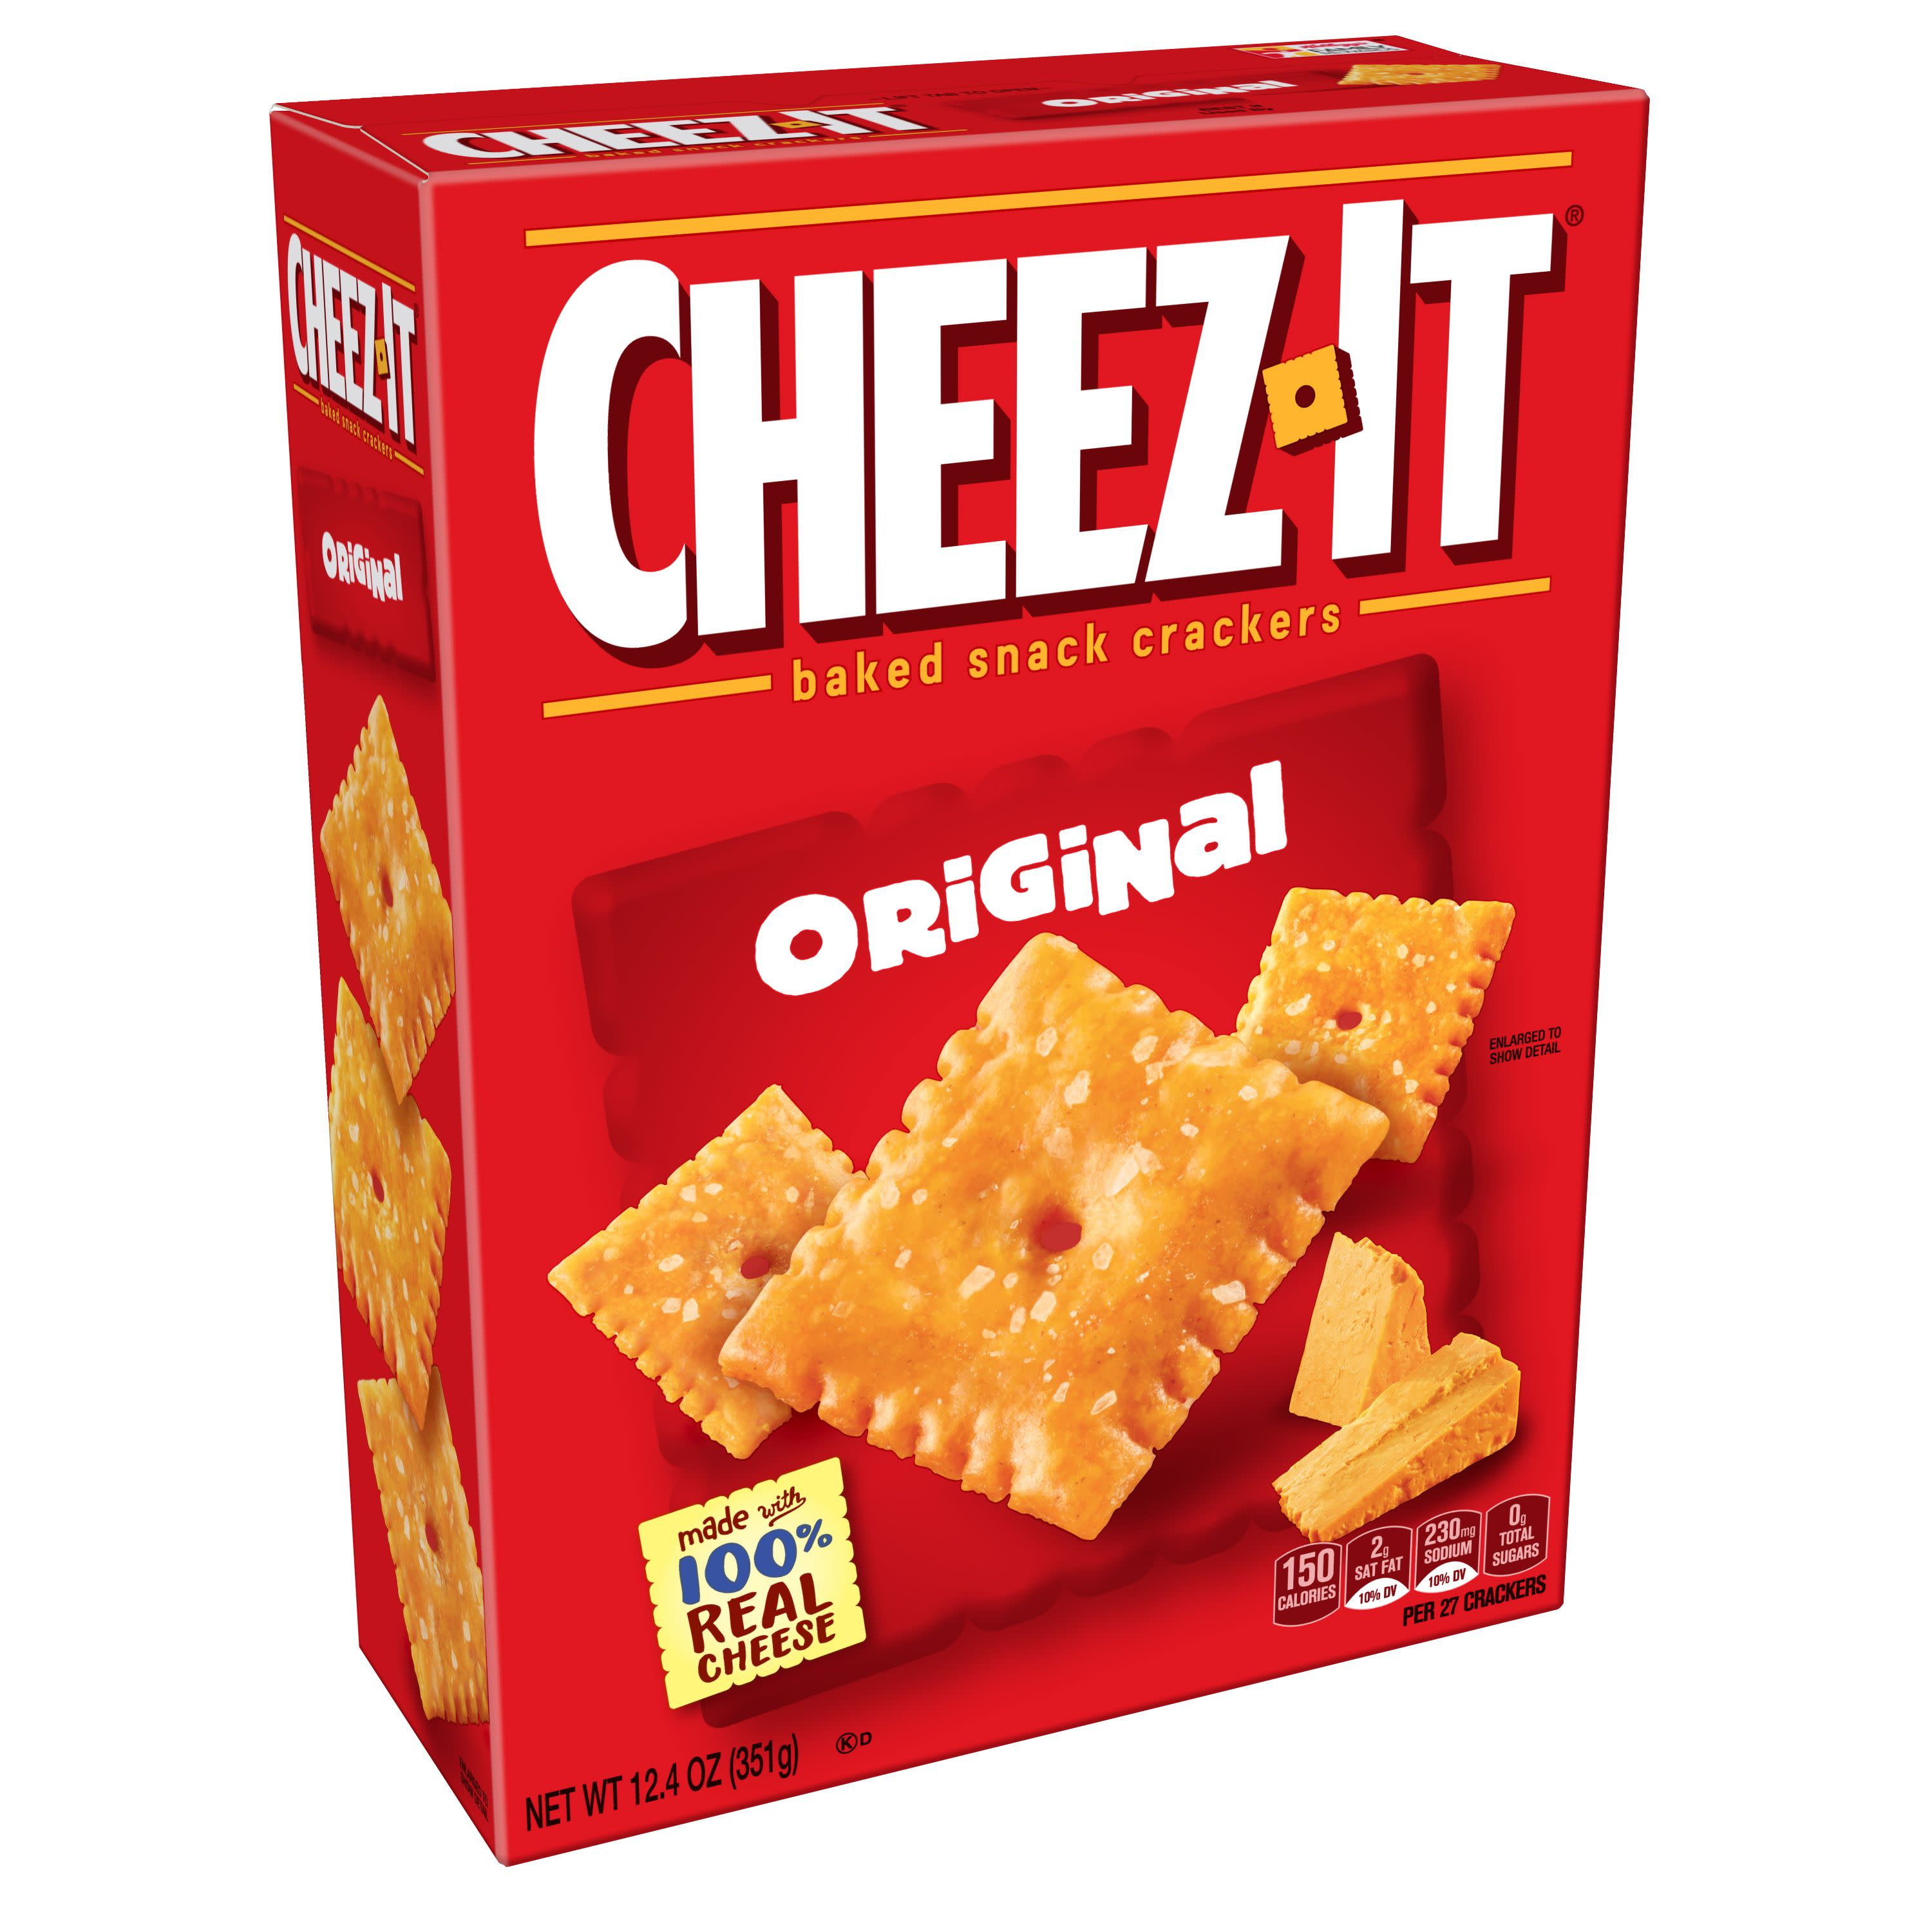 Cheez-It Original Baked Cheese Crackers - 12.4 Oz Box